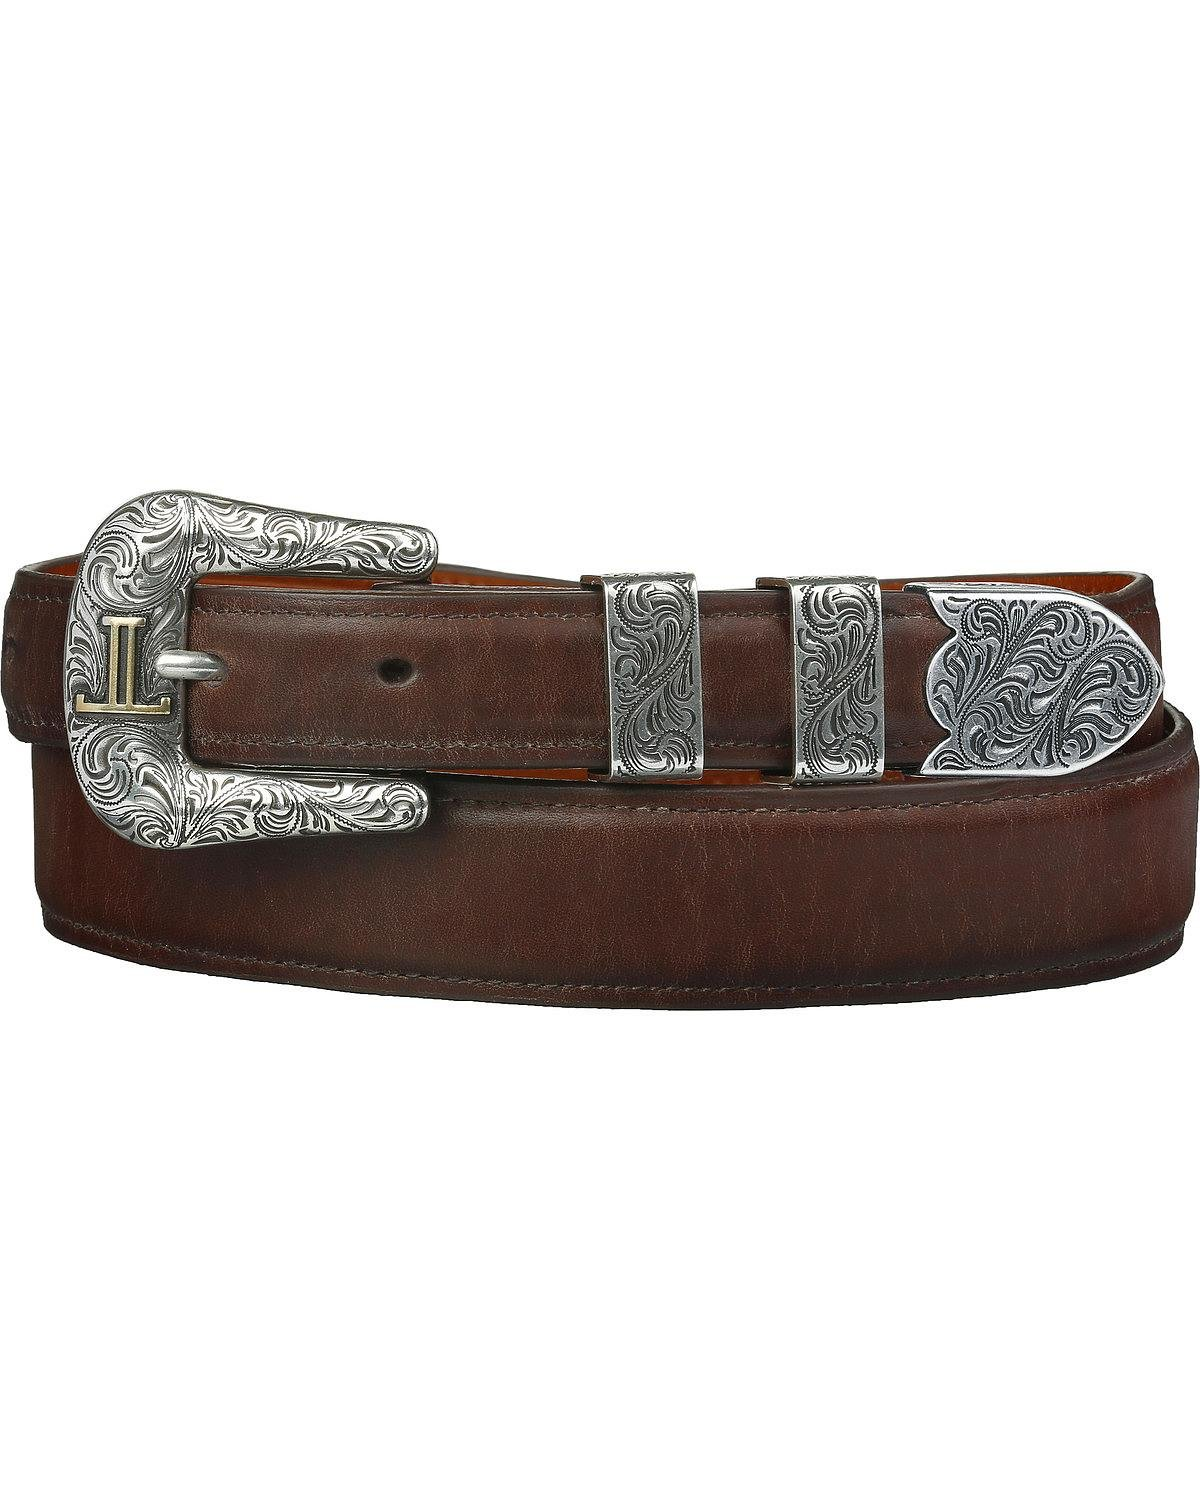 Lucchese Men's Ranch Hand Leather Belt Tan 36